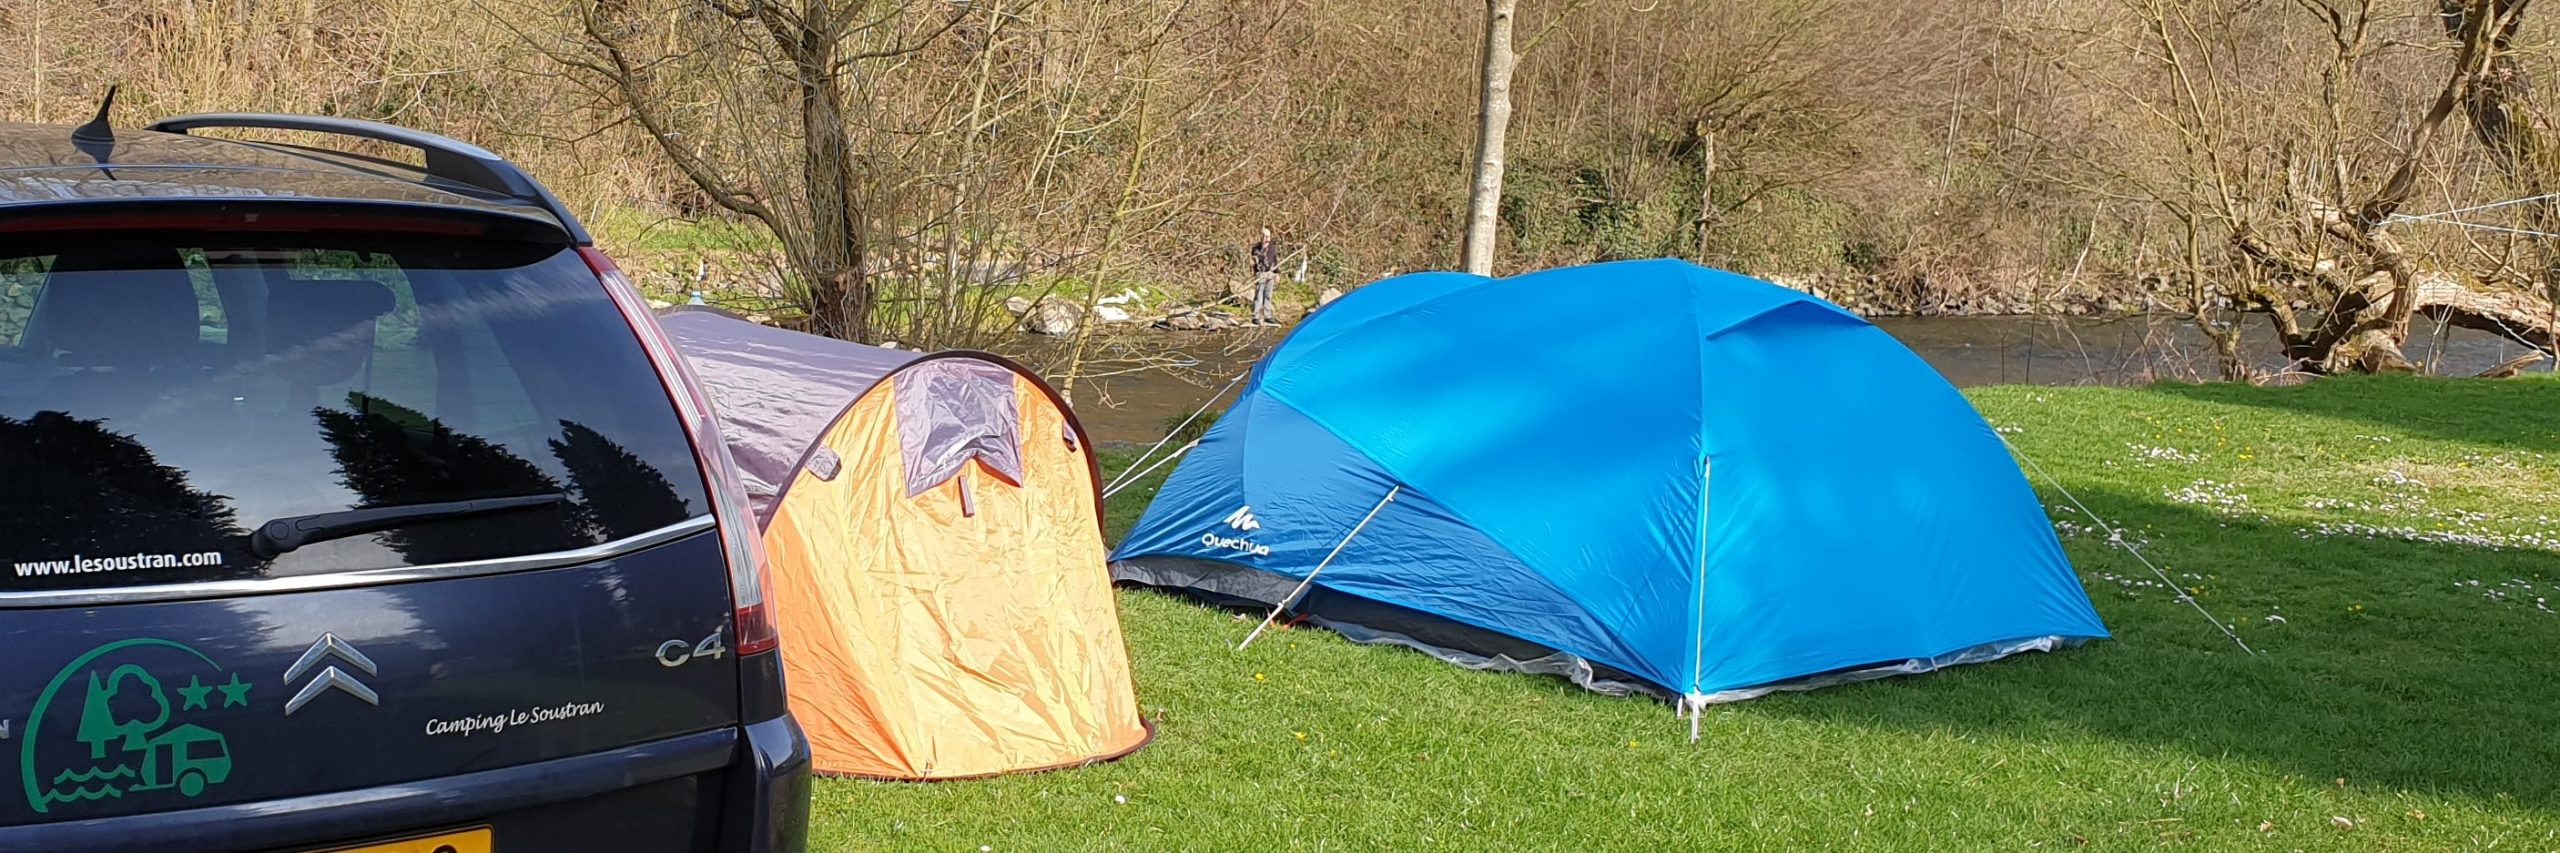 blog april 2019 Camping Correze